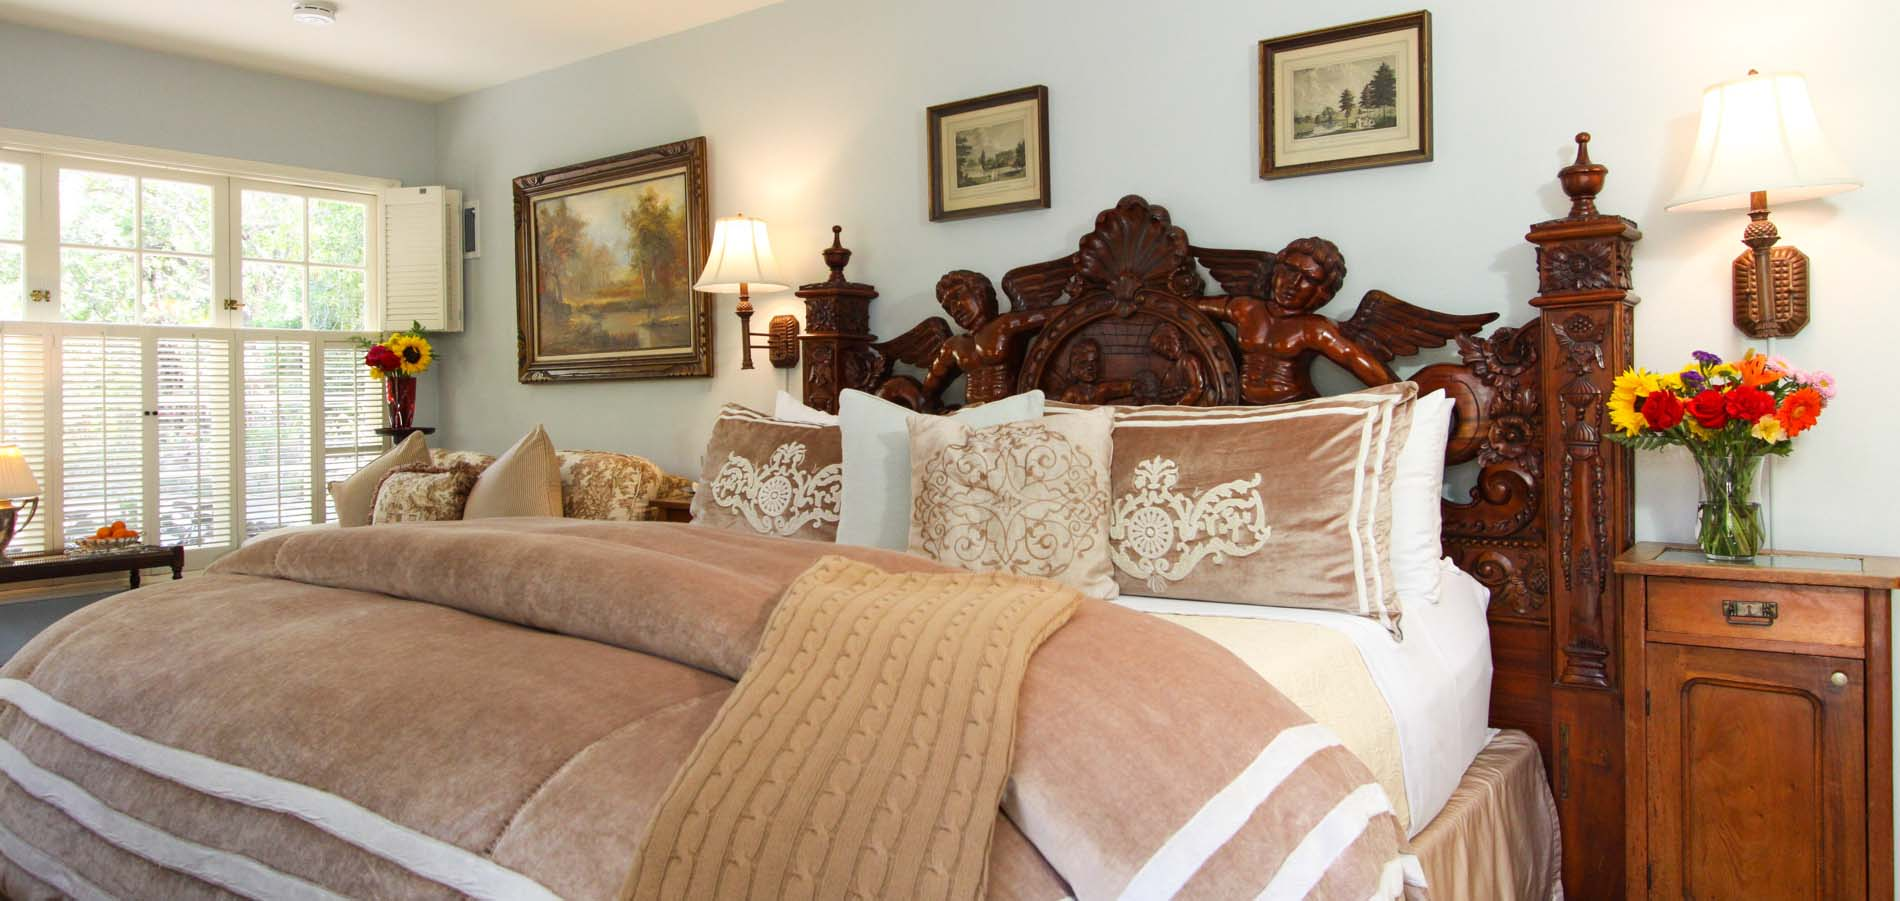 stoneleigh monterey bed and breakfast guestroom with bed and couch